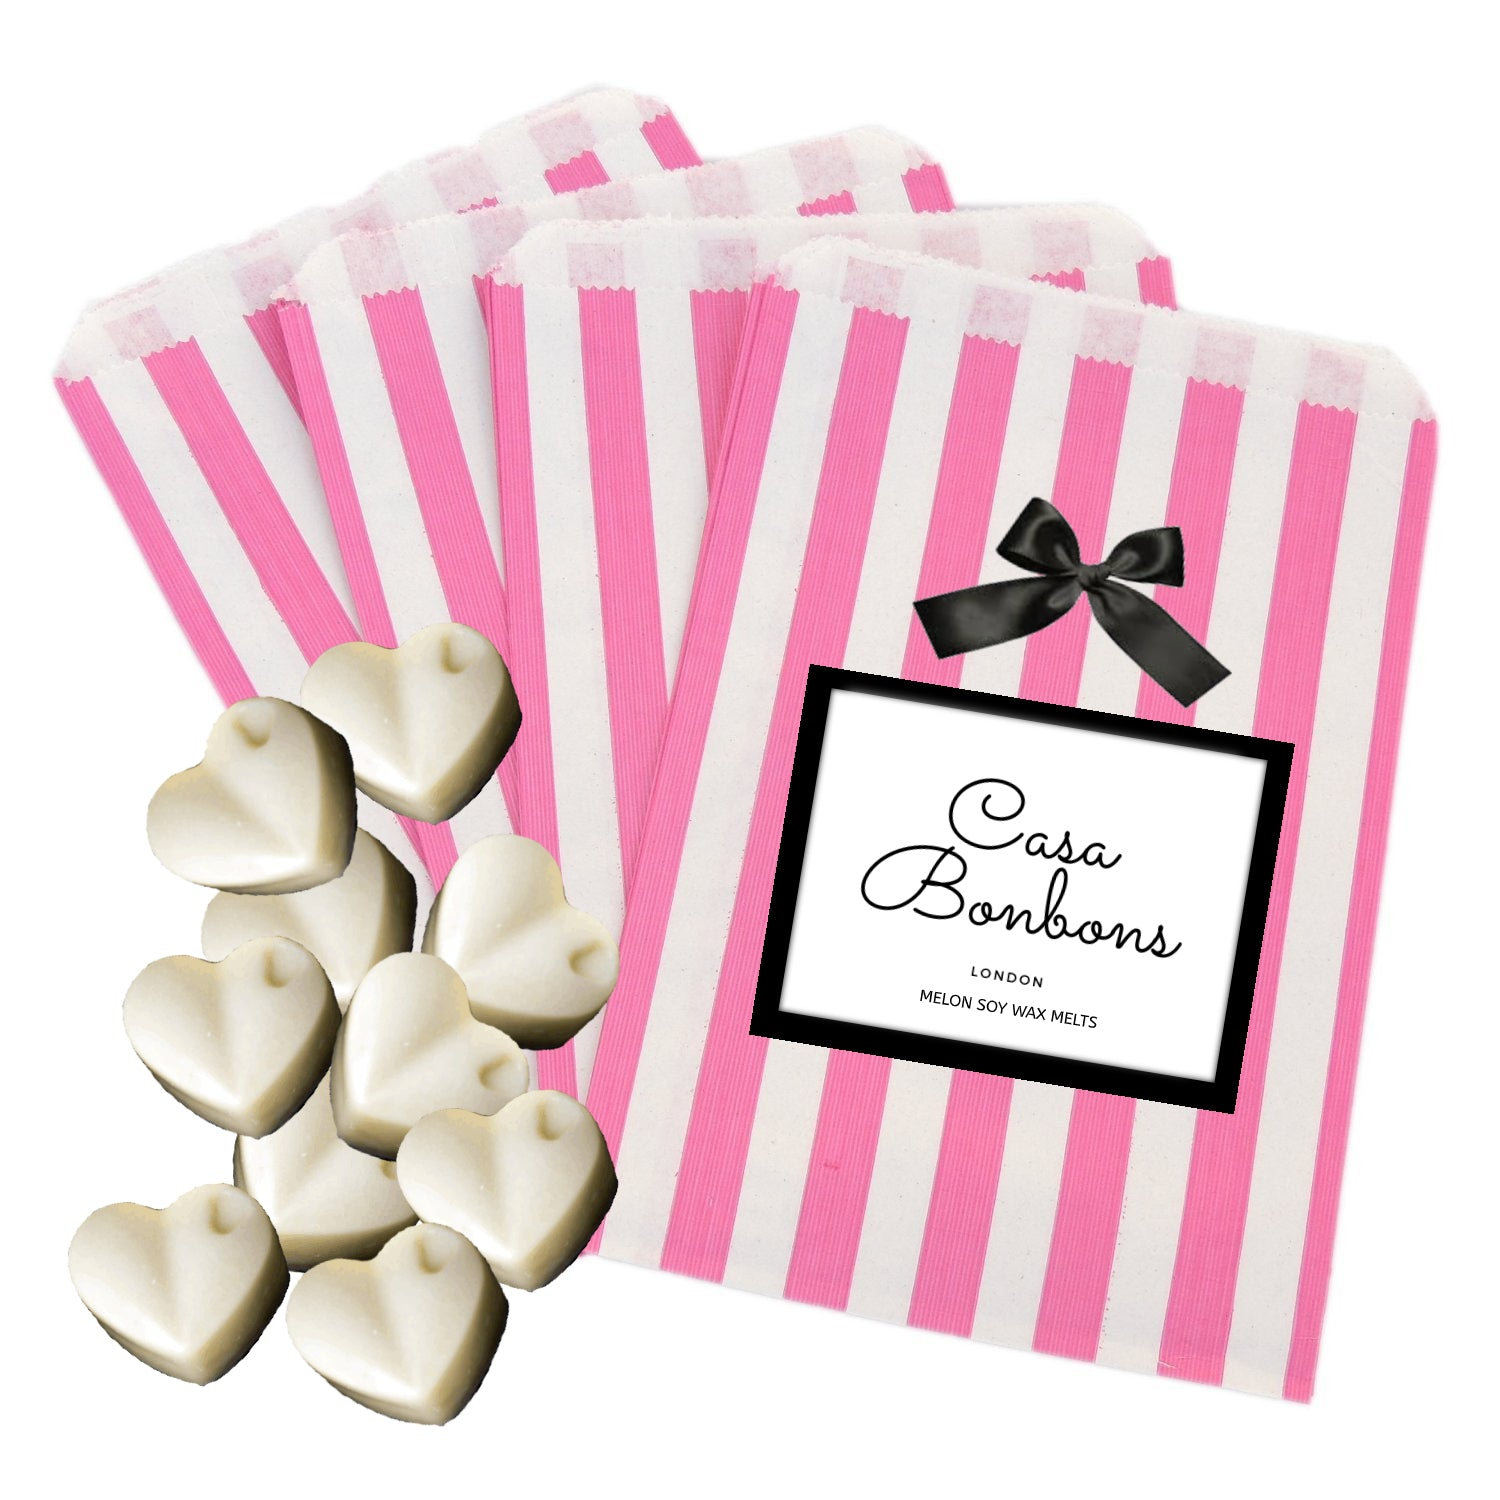 Melon scented Soy Wax Melts (10 hearts),PRE-ORDER delivery end of February - natoorio